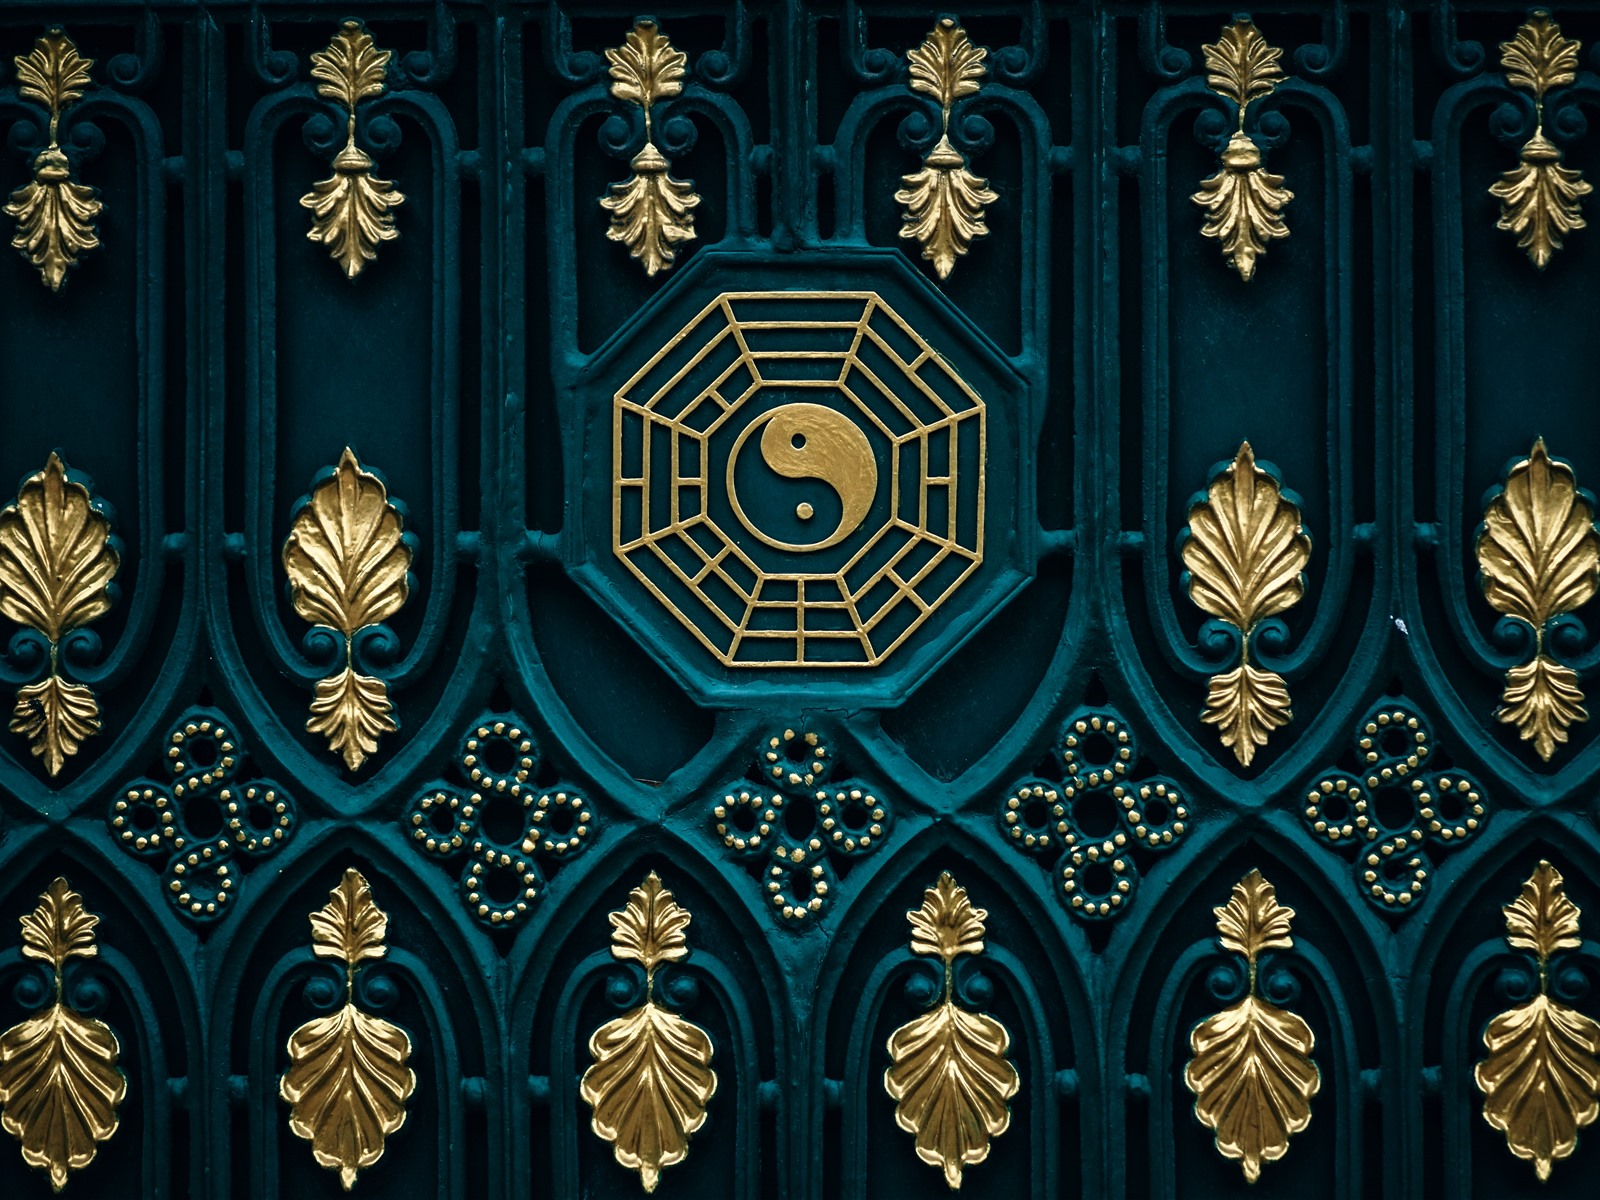 Wallpaper Bagua map yin yang door 5120x2880 UHD 5K Picture Image 1600x1200